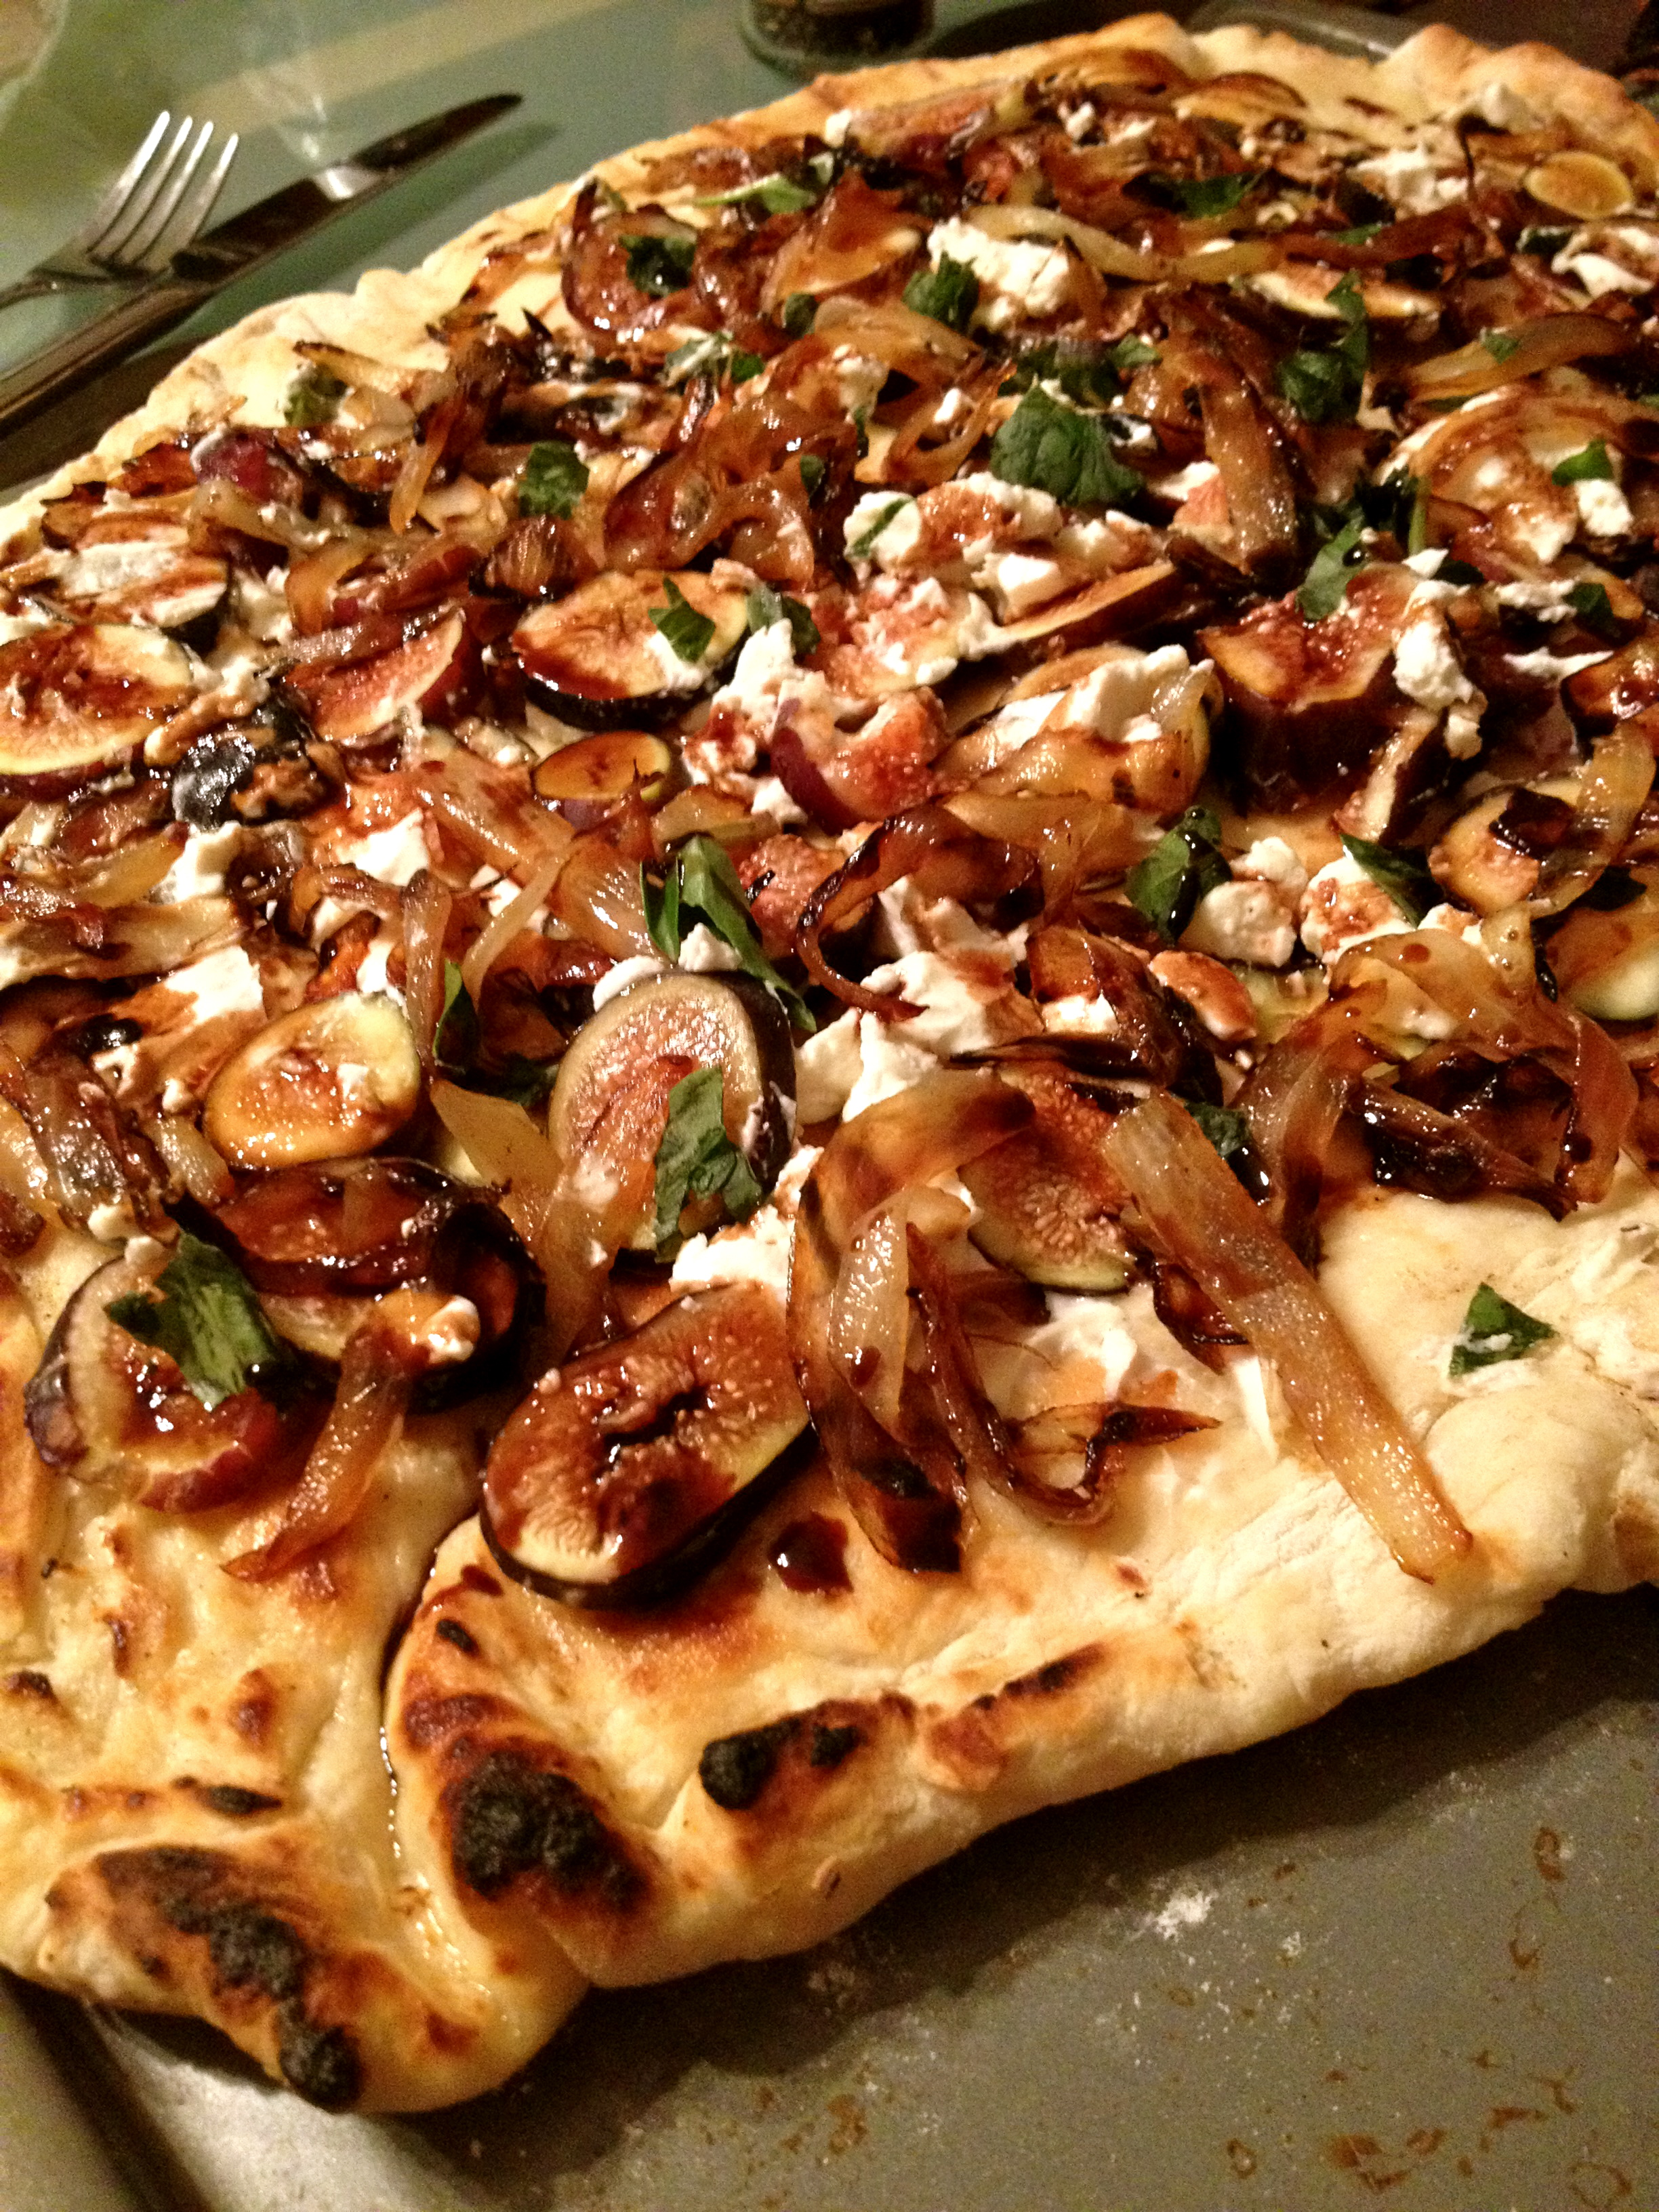 ... Figs – Fig, Caramelized Onion, Goat Cheese Pizza with Balsamic Glaze